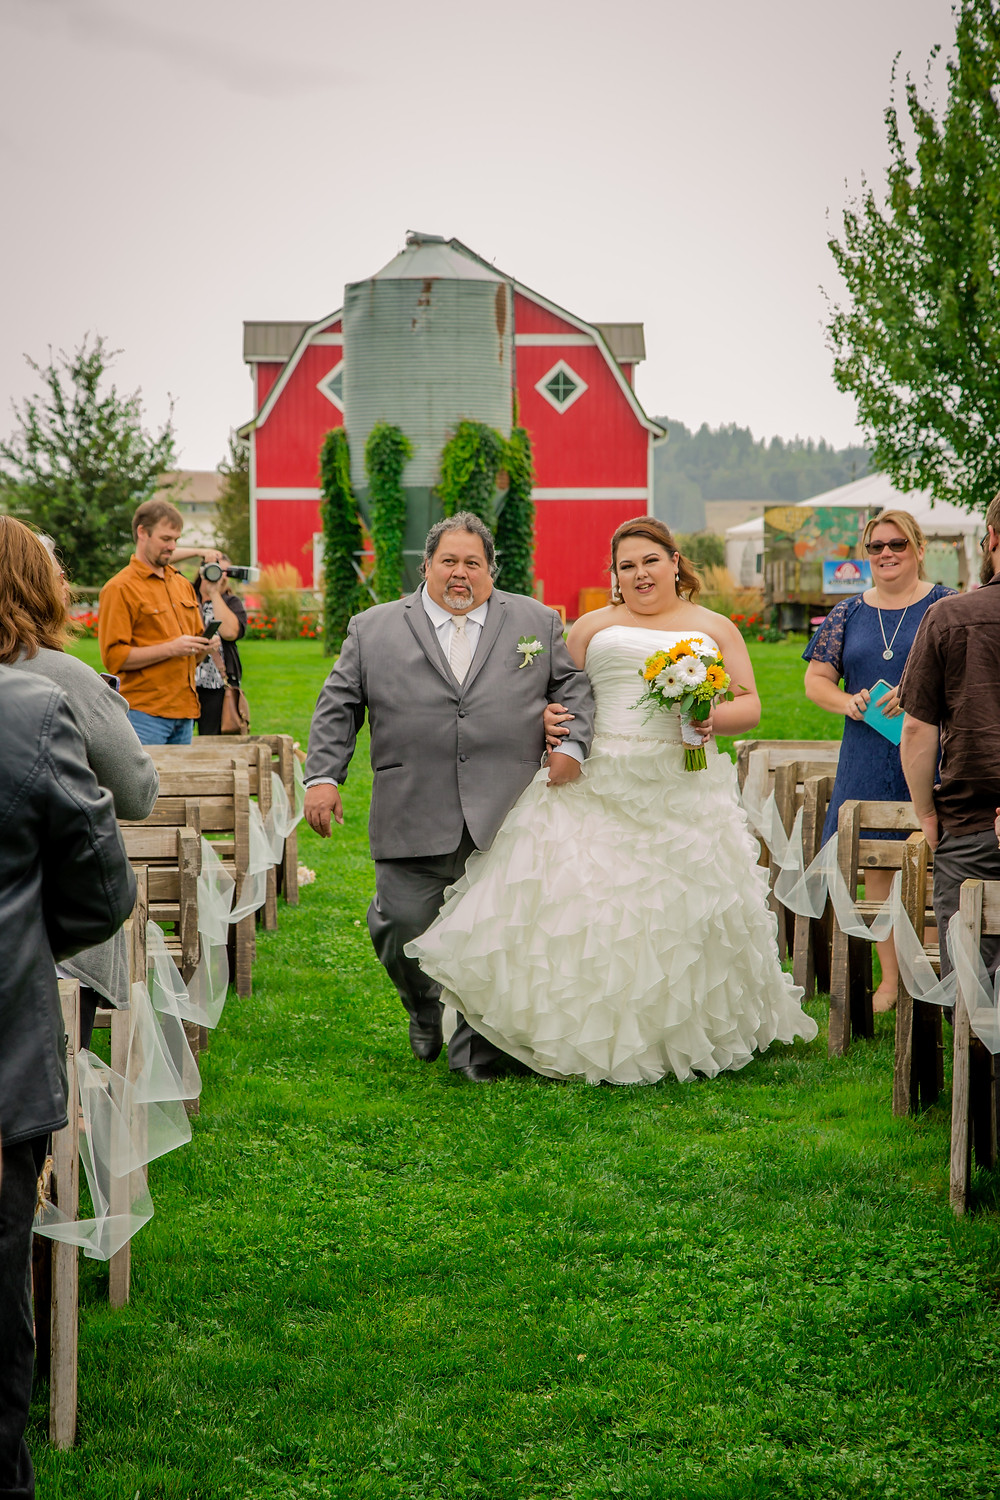 A father walks a bride down the aisle during the ceremony of her wedding at the Red Barn at Stocker Farms in Snohomish, a wedding venue near Seattle, WA.